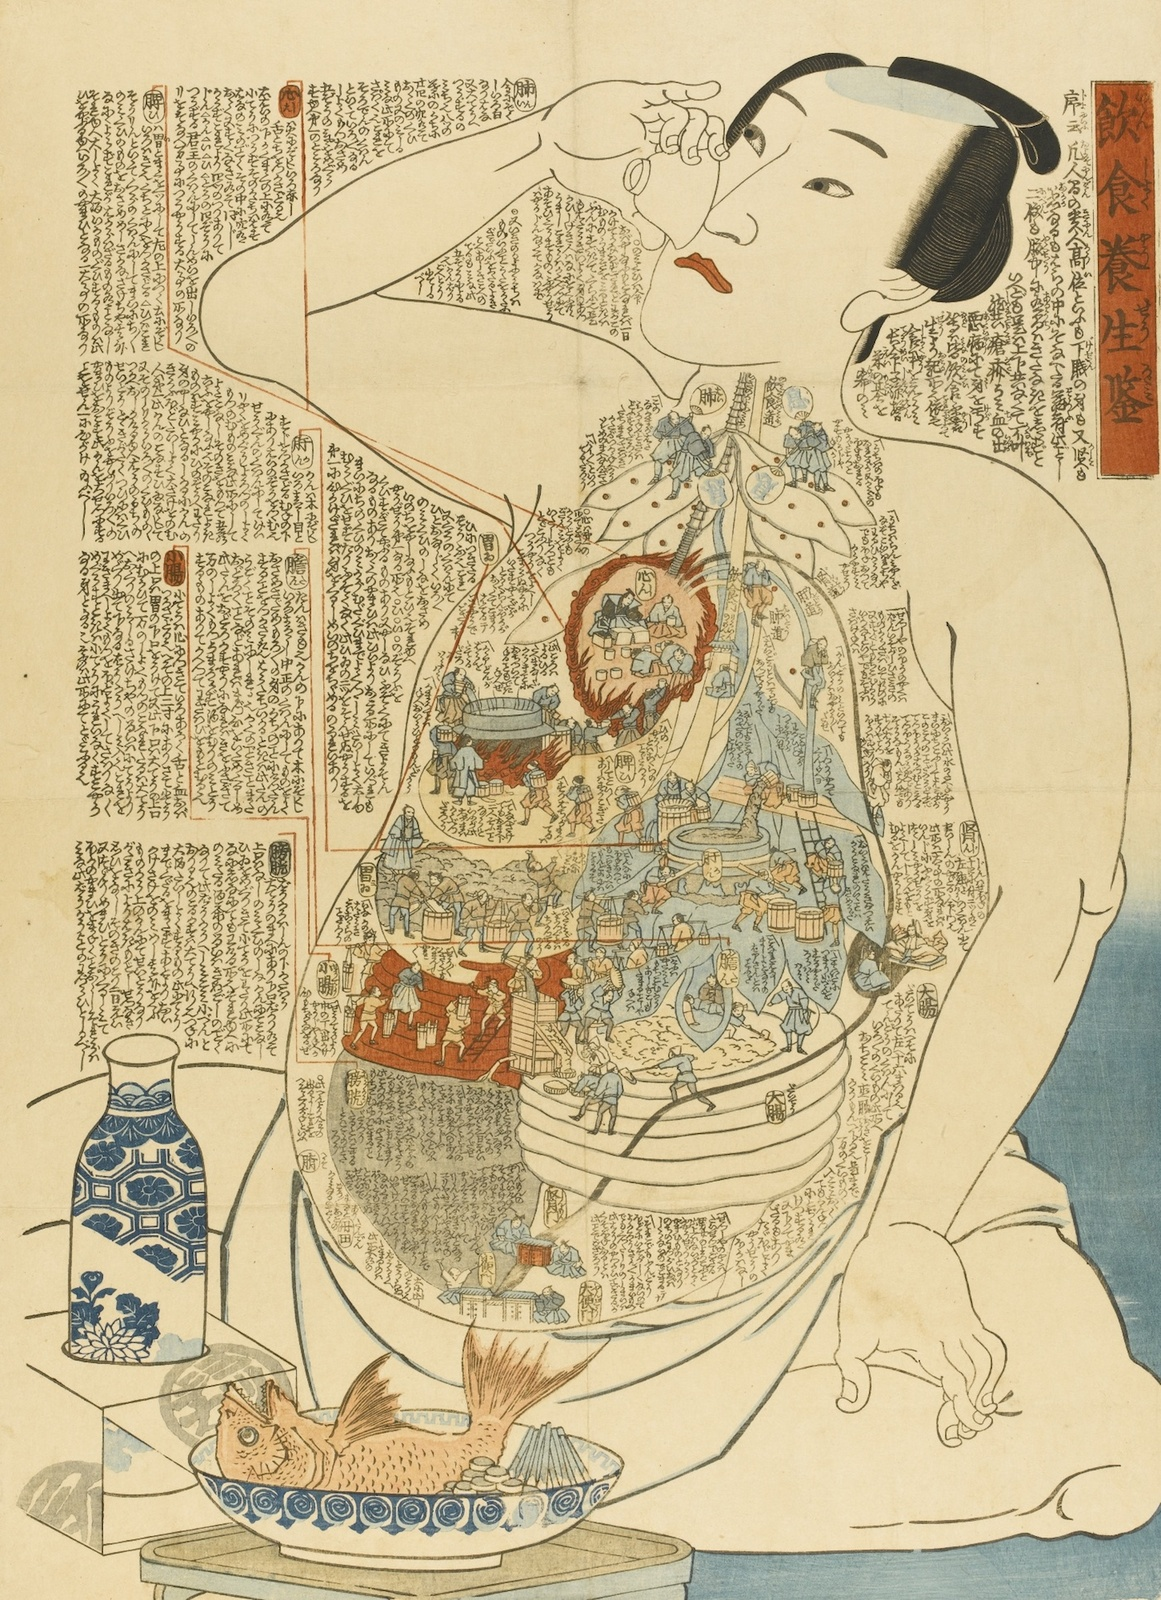 19th Century Japanese Woodblock Prints Creatively Illustrate The Inner Workings Of The Human Body Open Culture